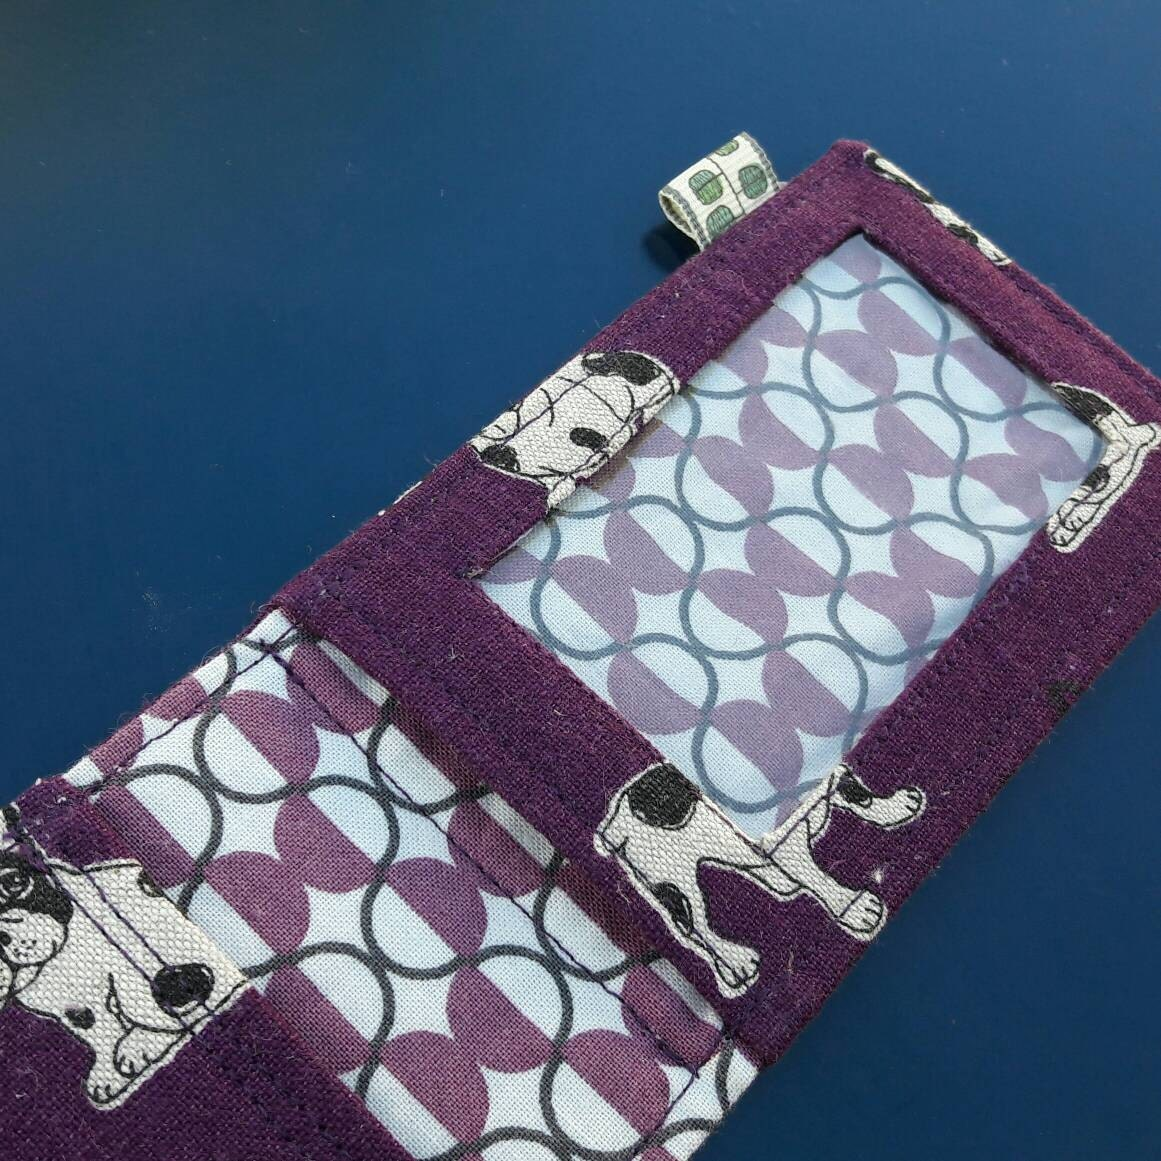 French Bulldog Oyster Card Wallet Business Card Holder